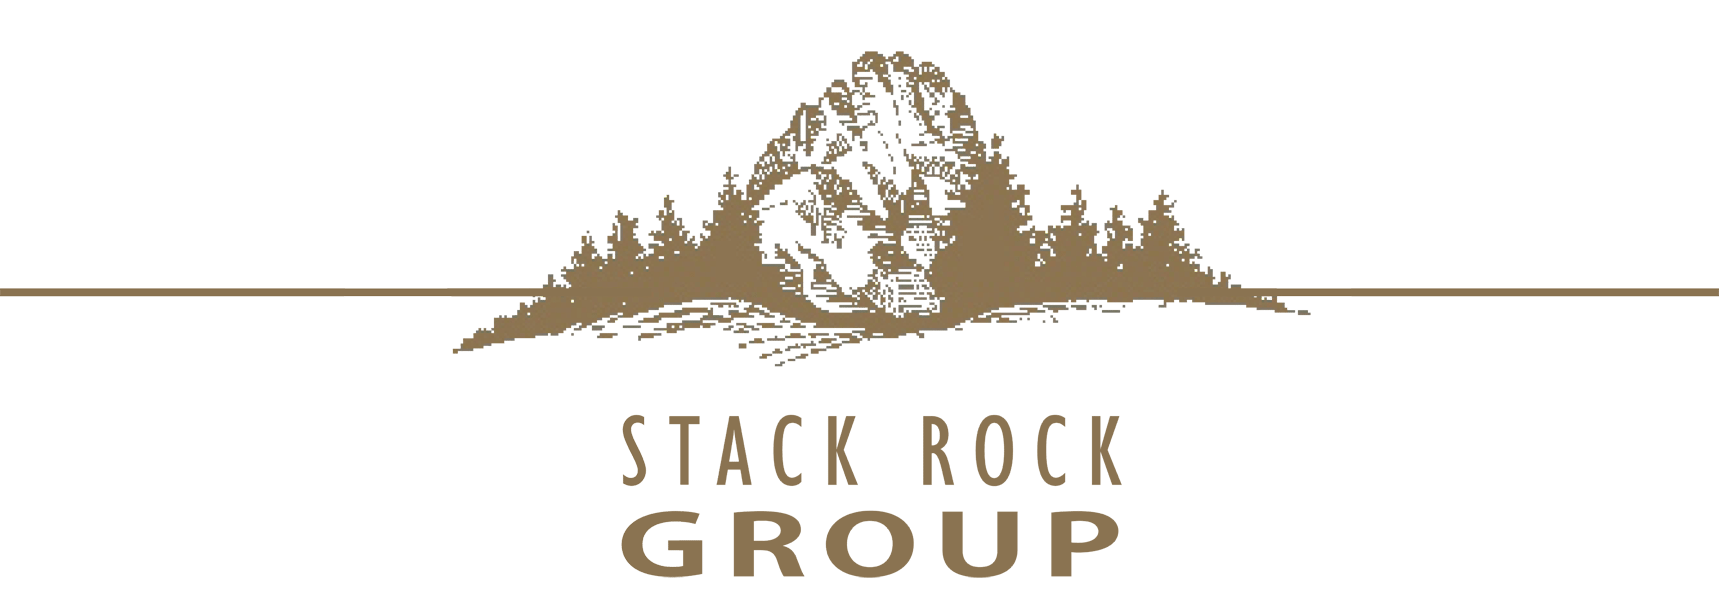 Irrigation drawing landscape architecture construction. Stack rock group and